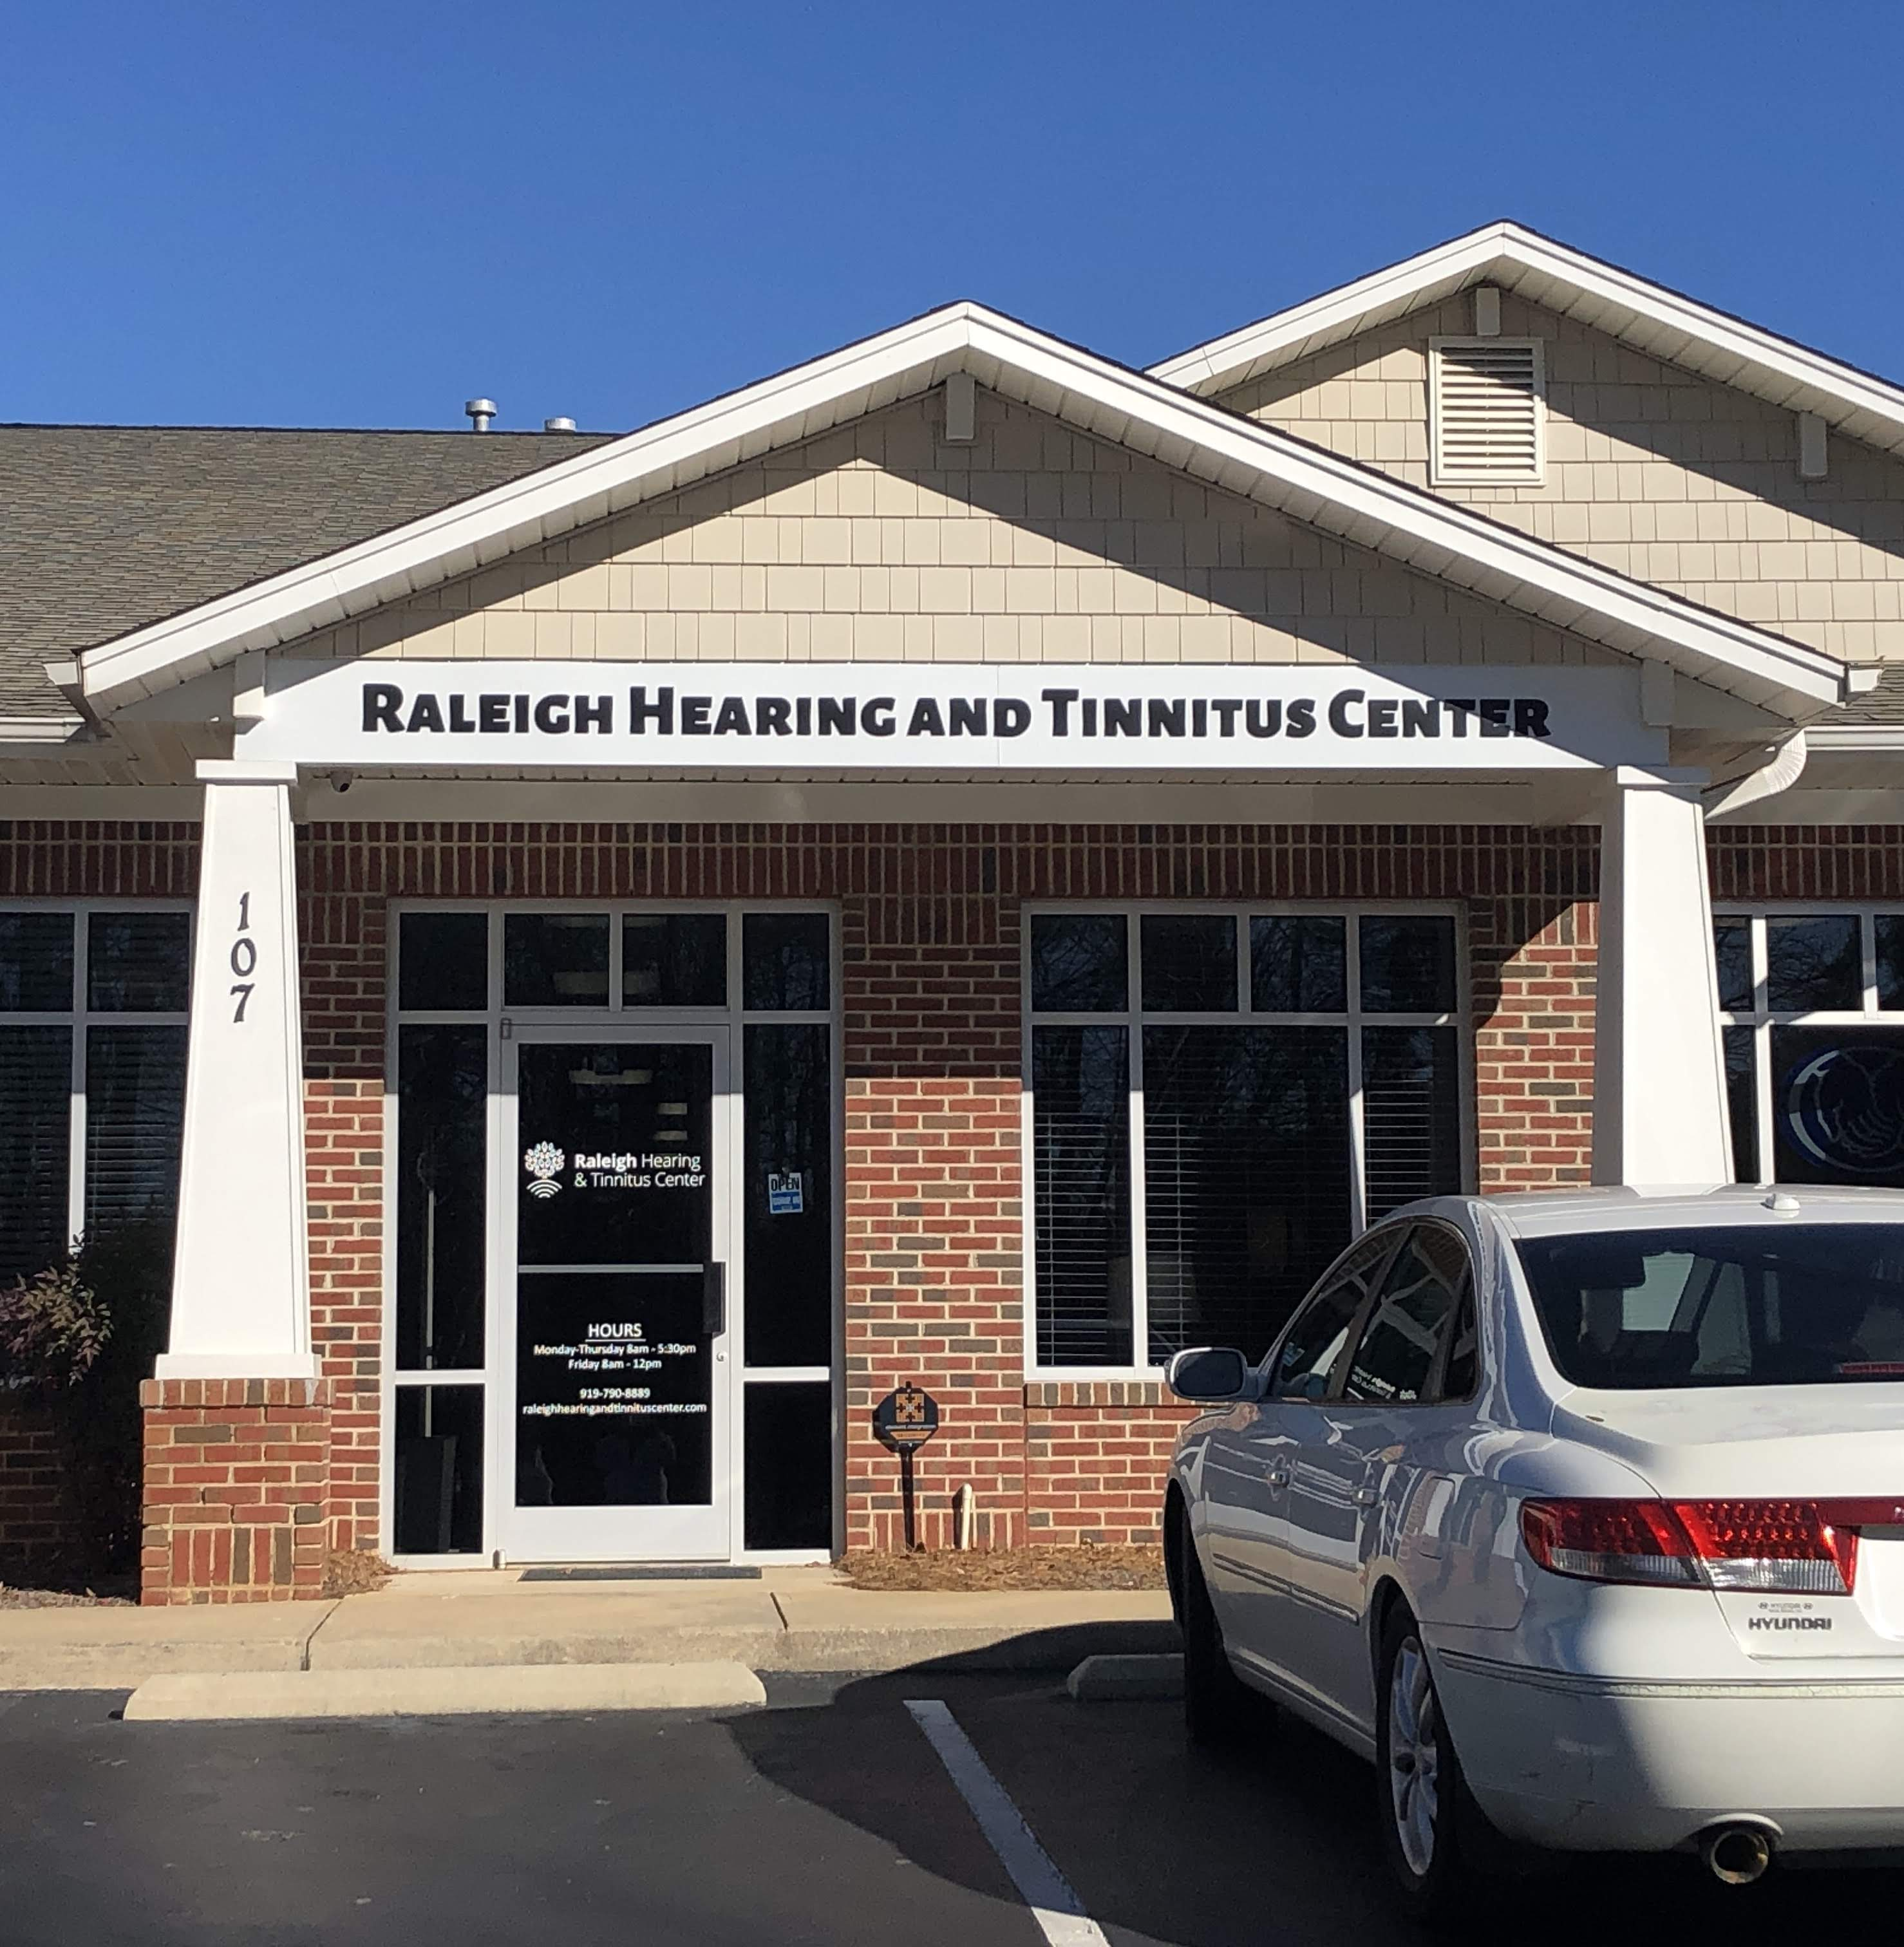 Raleigh Hearing and Tinnitus Center